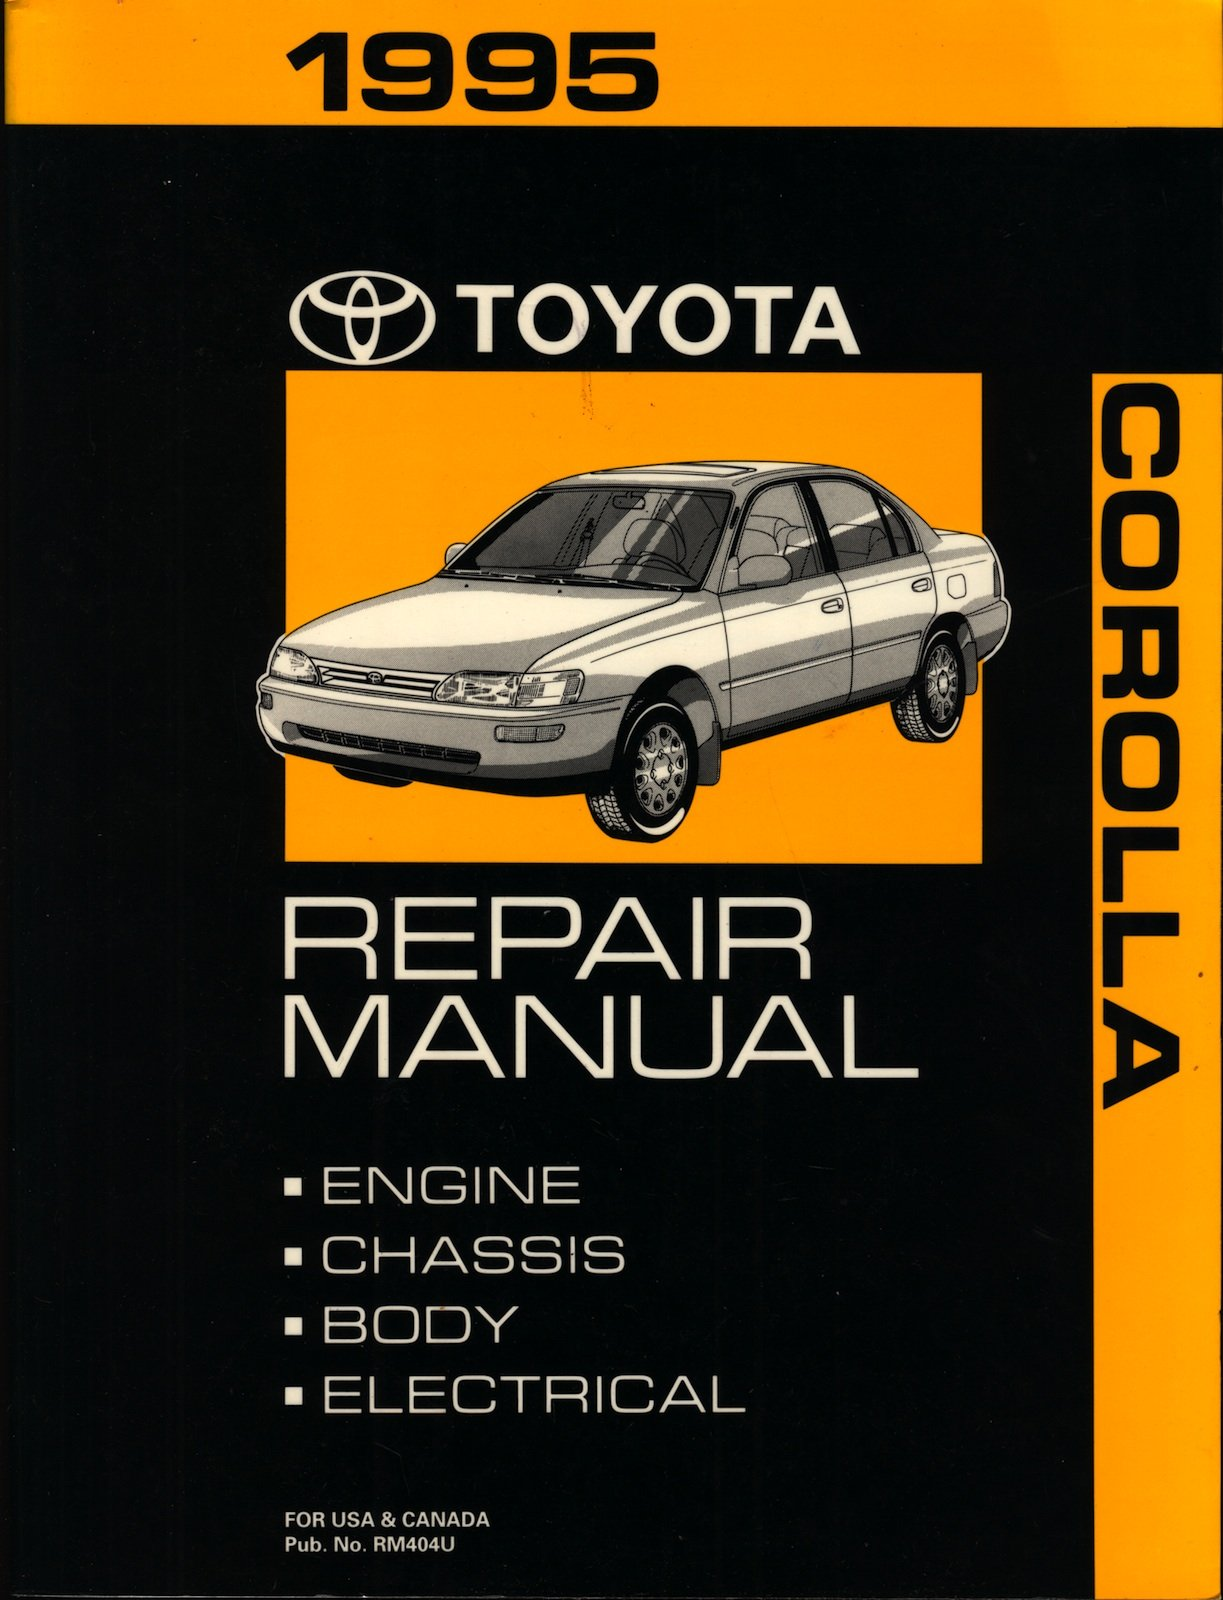 1995 Toyota Corolla Repair Manual Toyota Amazon Com Books 2006 Toyota  Corolla Wiring Diagram 1994 Toyota Corolla Wiring Diagram Manual Original